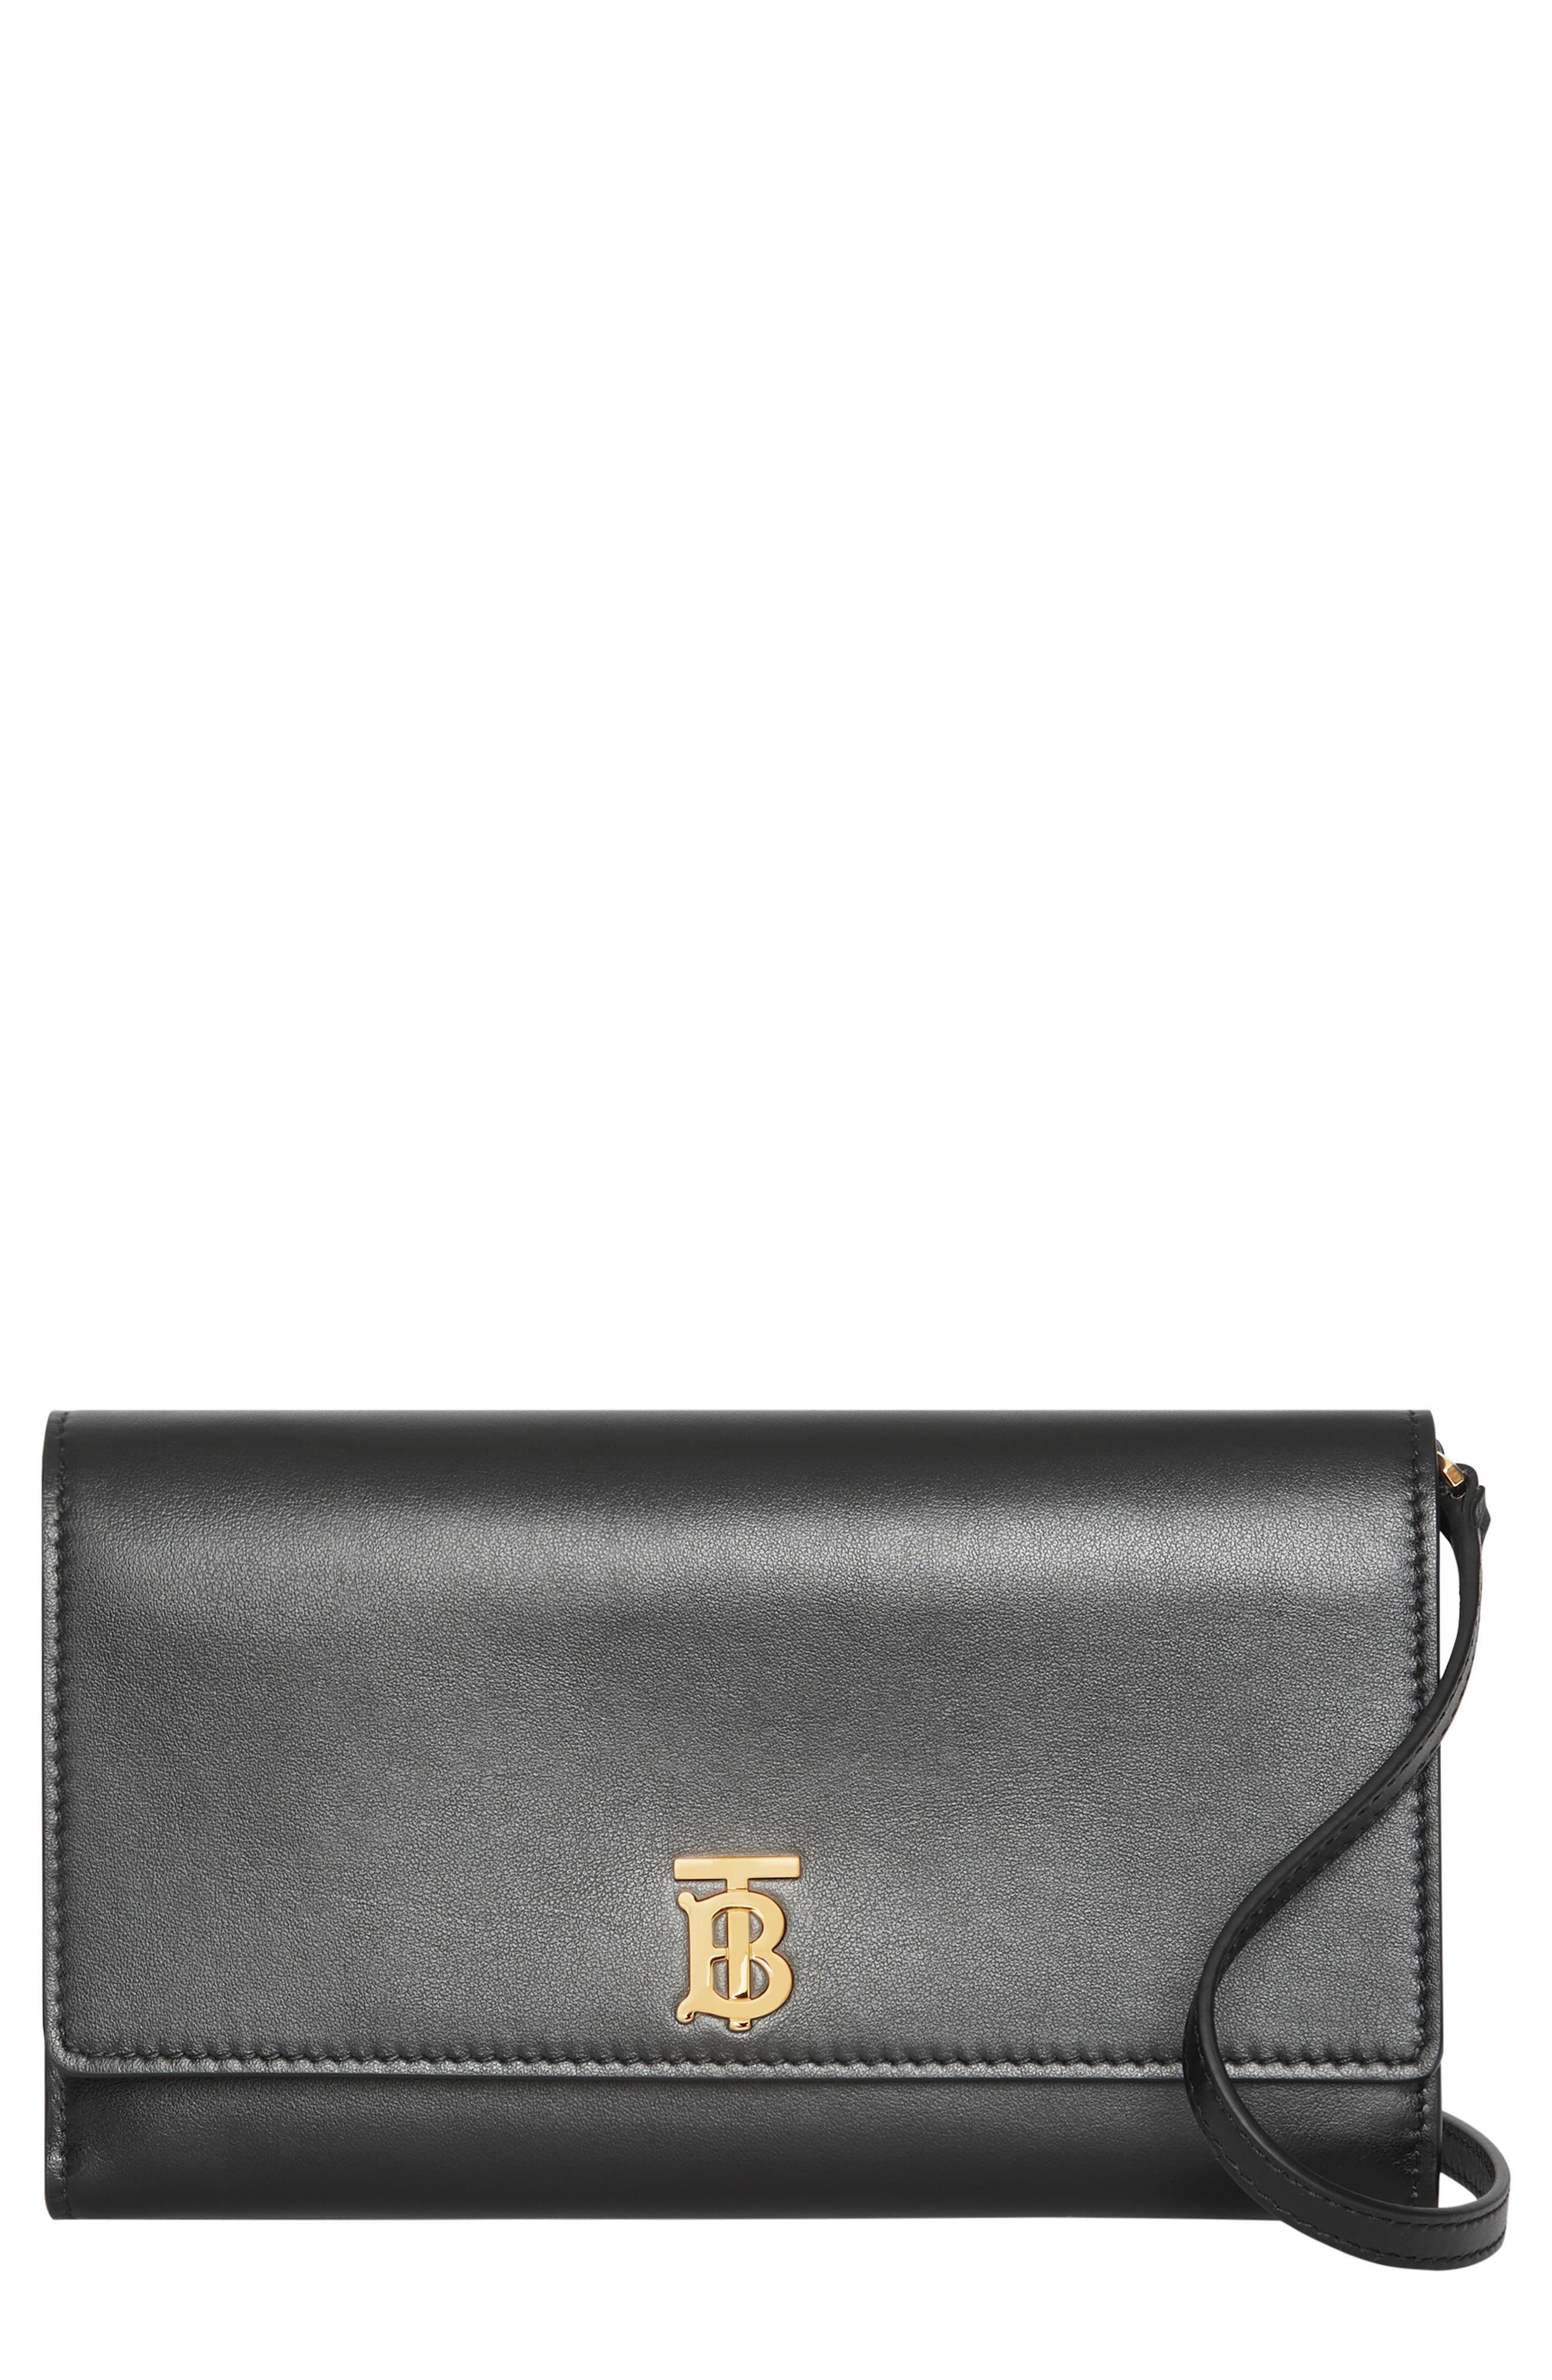 BURBERRY, Hazelmere Leather Crossbody Wallet, Main thumbnail 1, color, BLACK